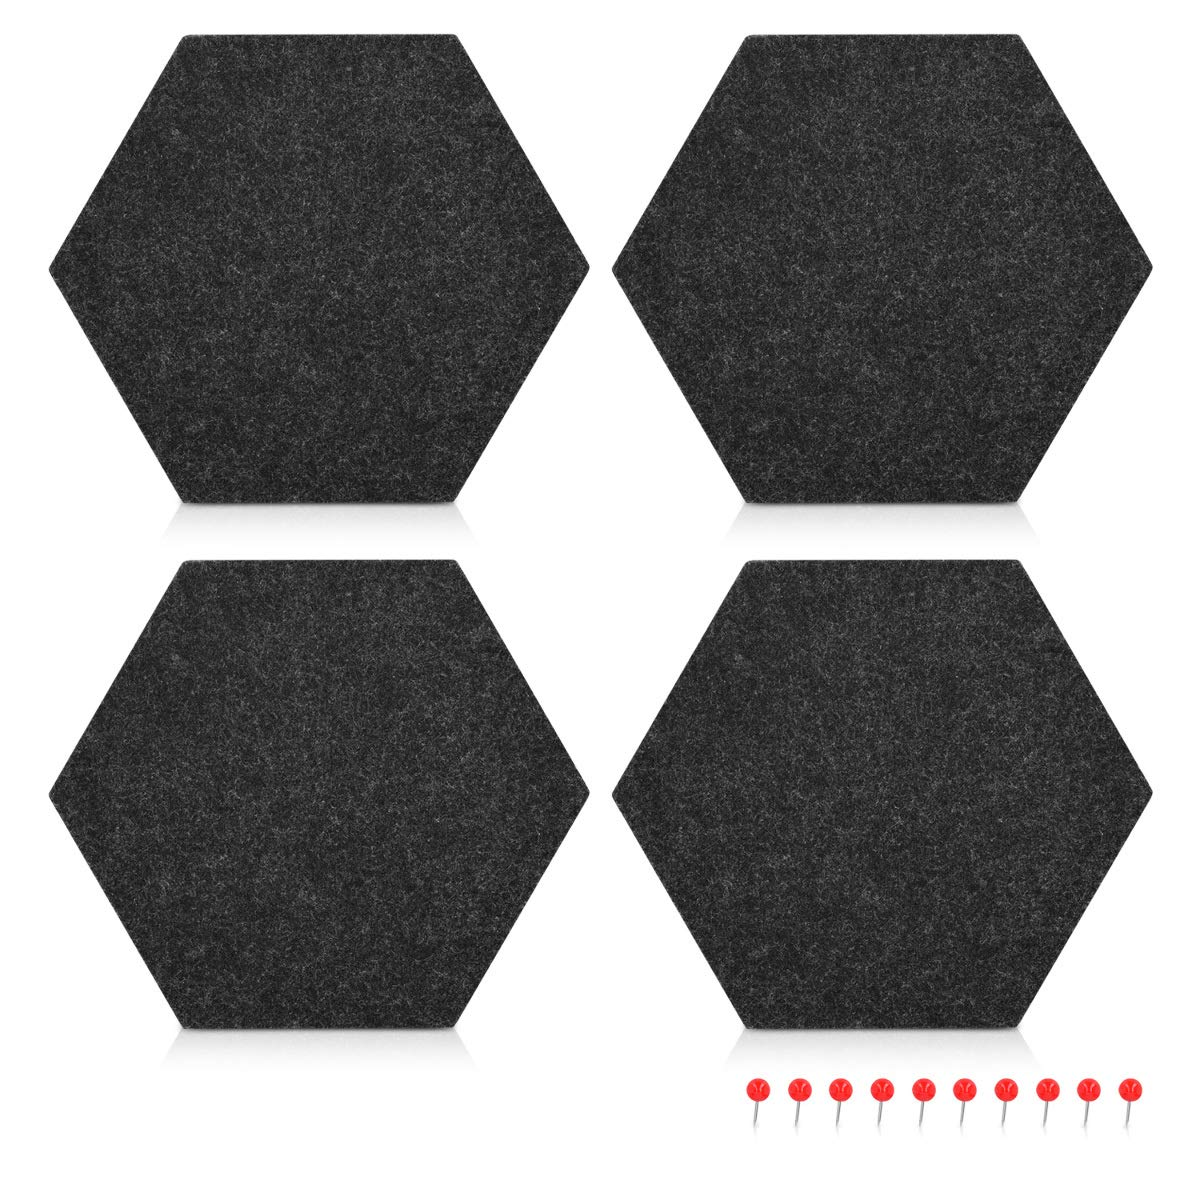 Navaris Hexagon Felt Board Tiles - Set of 6 Notice Memo Bulletin Boards with Push Pins Pack 5.9 x 7 inches (15 x 17.7 cm) - Grey, Turquoise